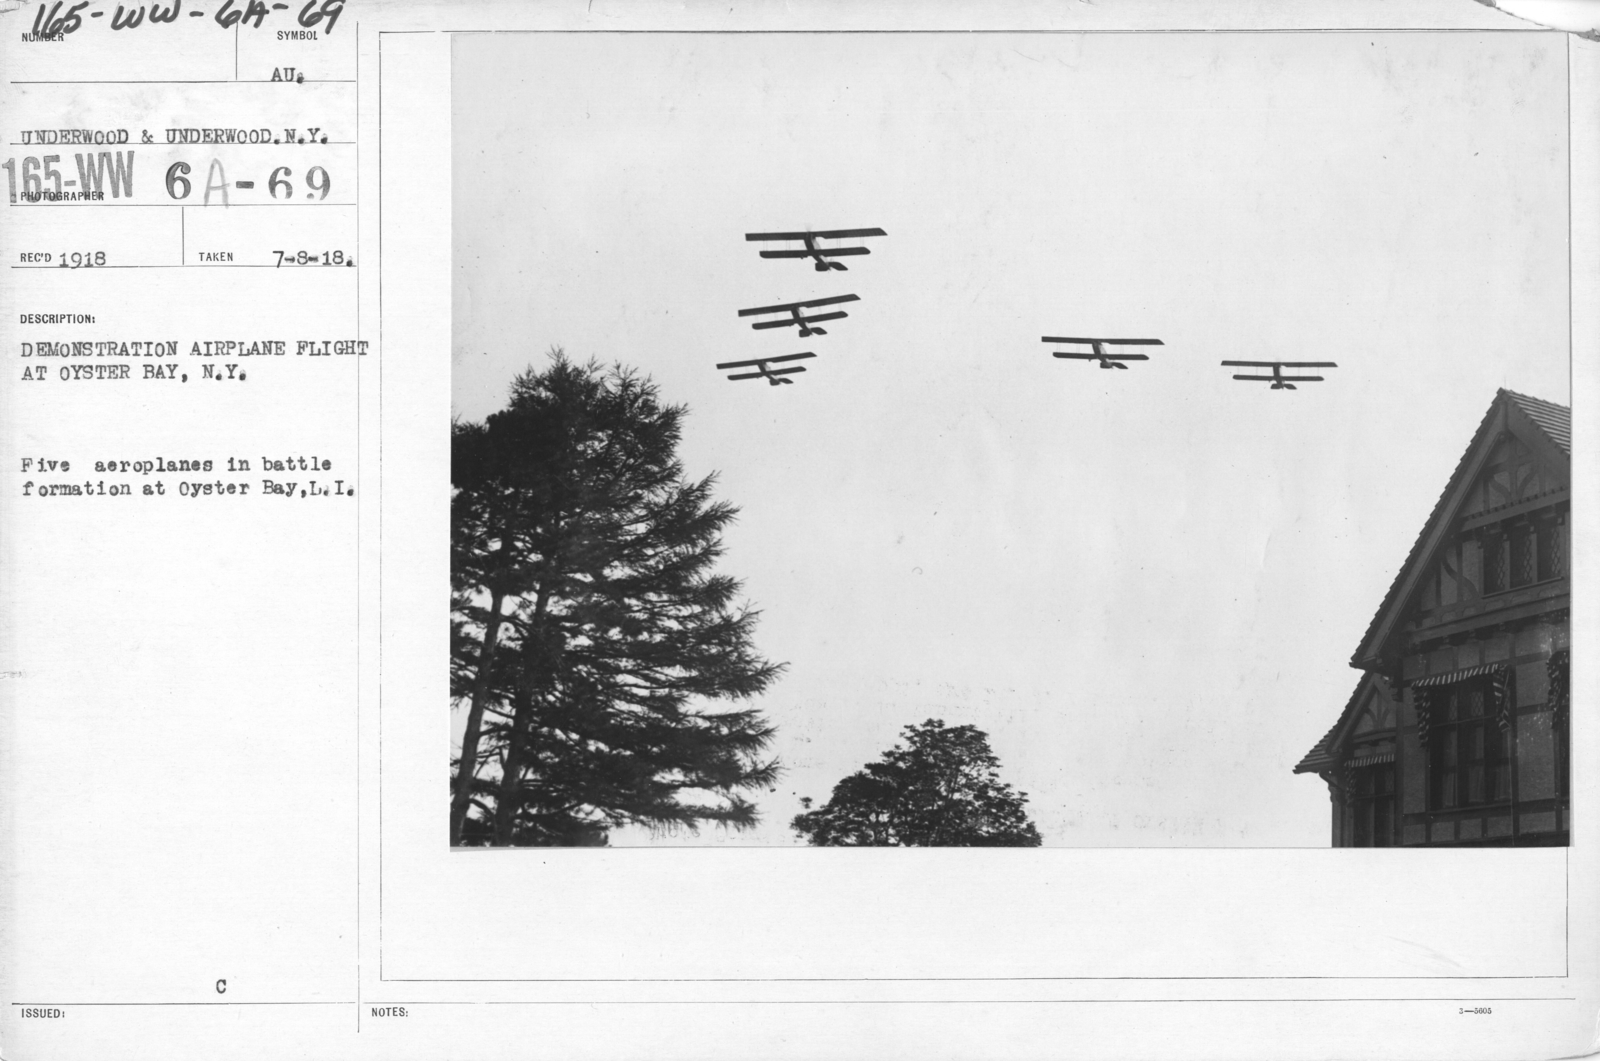 Airplanes - Flight - Demonstration airplane flight at Oyster Bay, N.Y. Five aeroplanes in battle formation at Oyster Bay, L.I